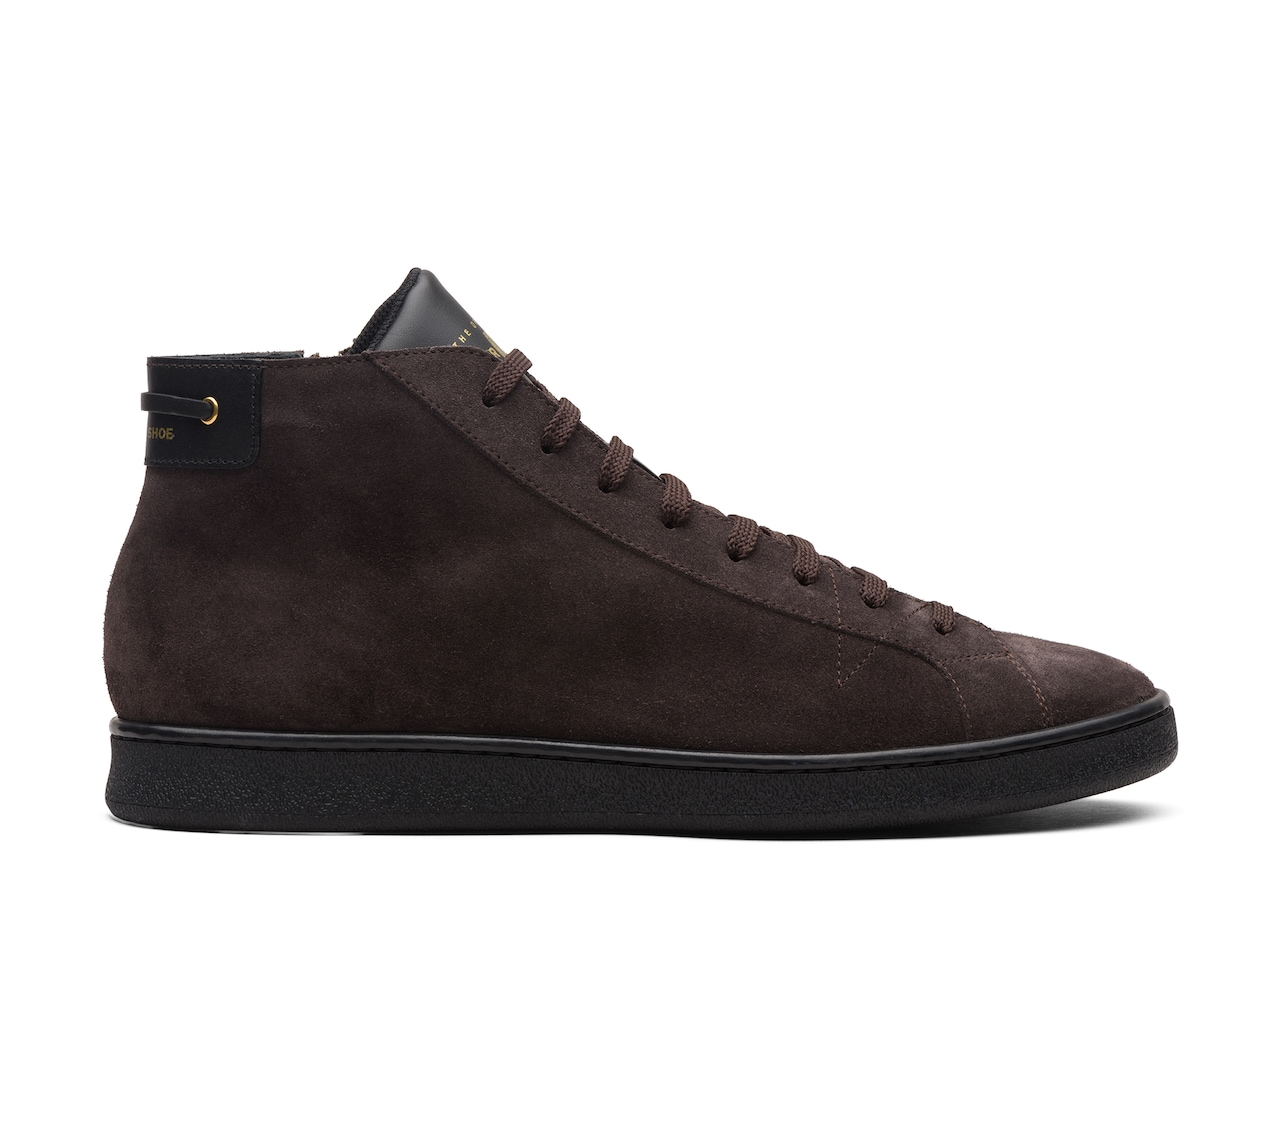 SUEDE SNEAKERS BROWN